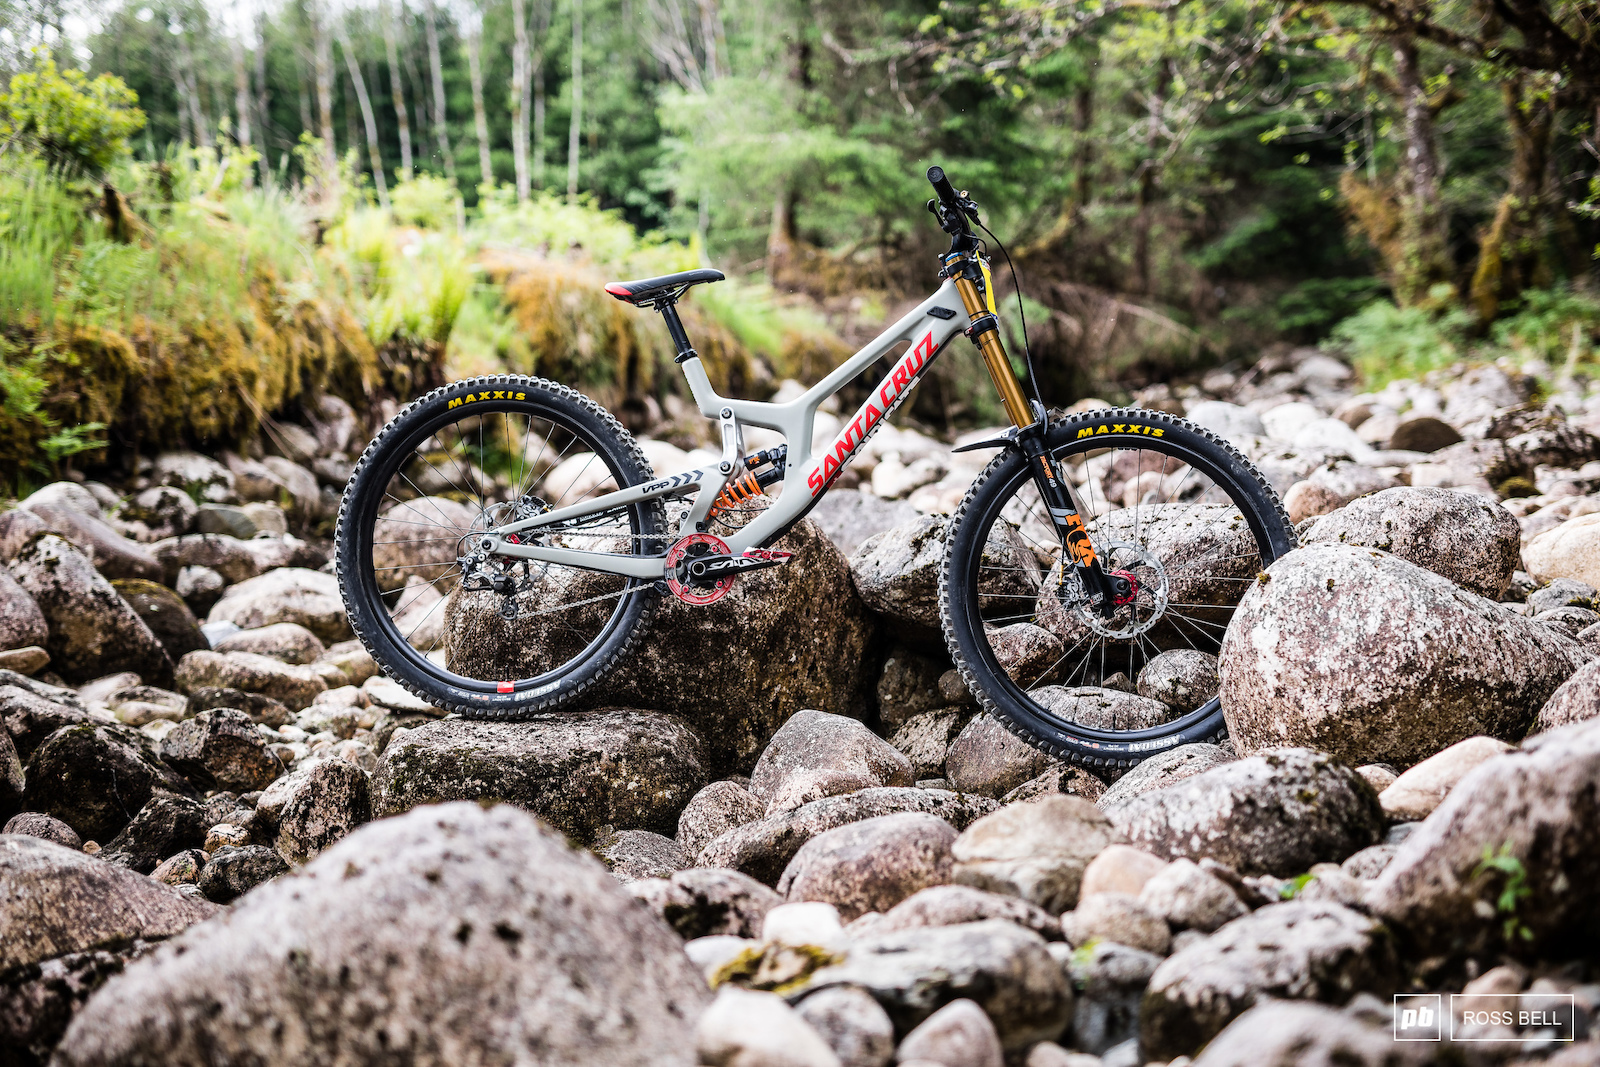 d62e0efddcb Santa Cruz V10. Fort William hosts the second round of the downhill World  Cup this weekend, and our man on the ground, Ross Bell, just beamed over  these ...